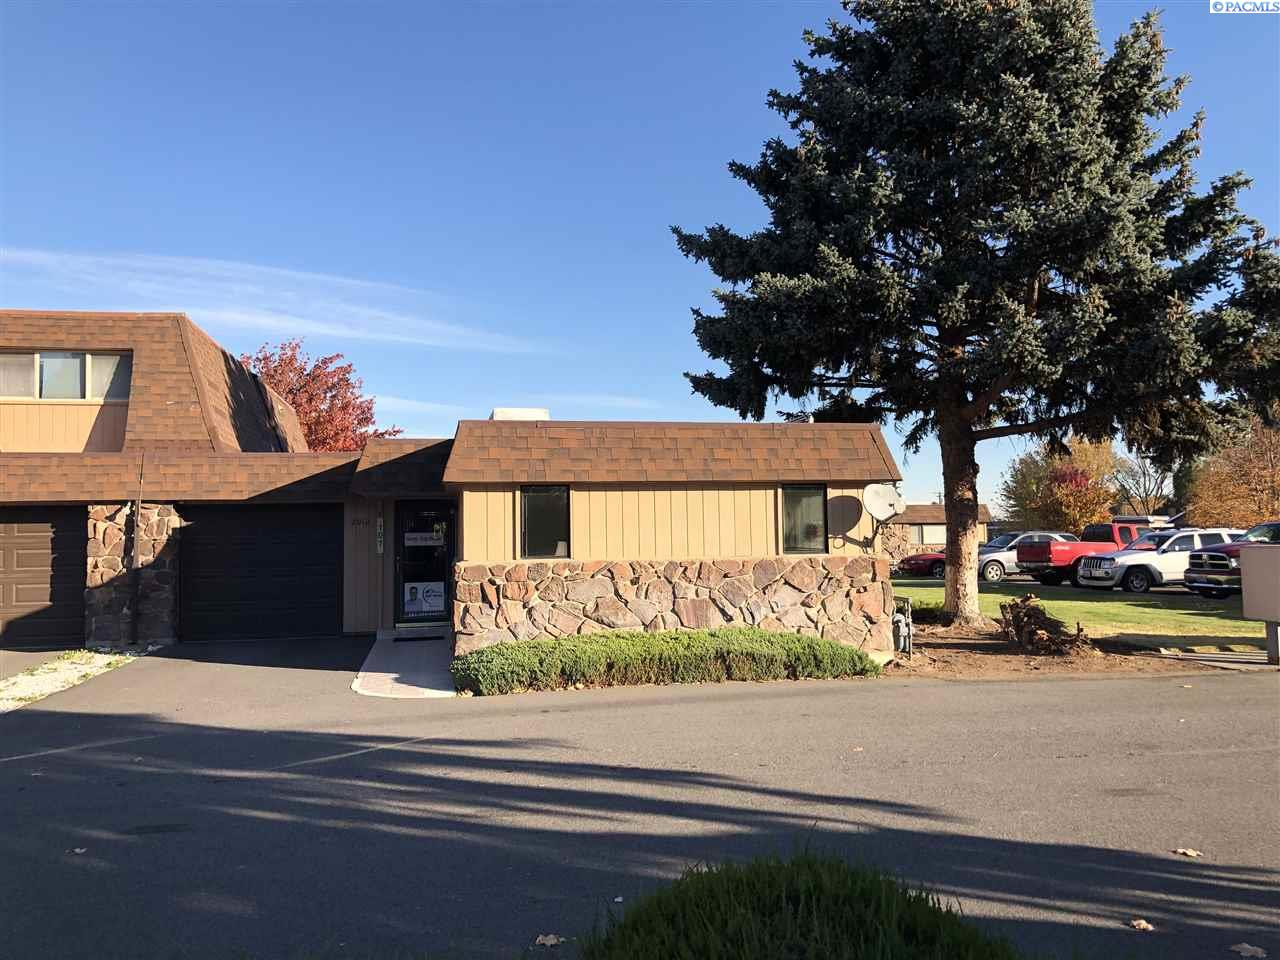 Condominiums for Sale at 2912 W Hood Ave A101 Kennewick, Washington 99336 United States